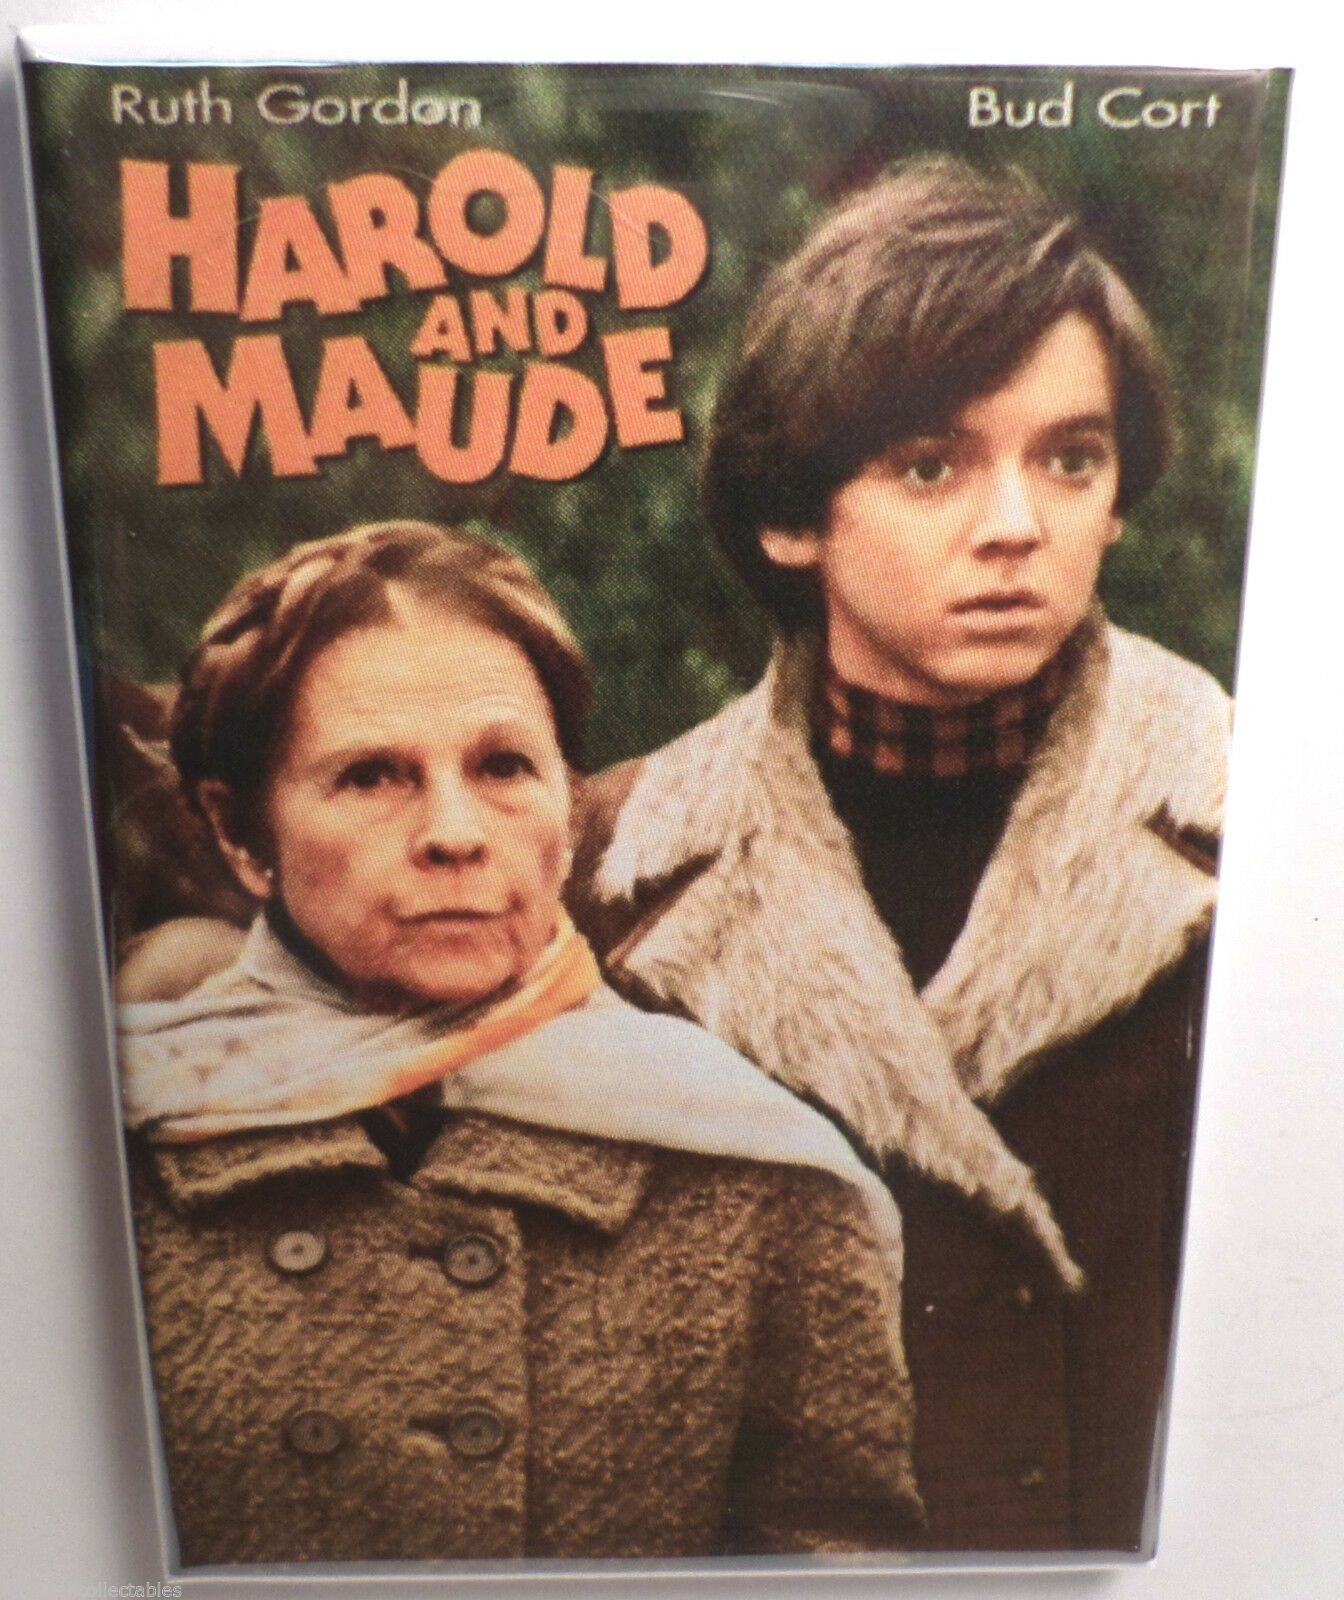 Pin by Argosy Book Shop on Harold & Maude in 2020 Ruth